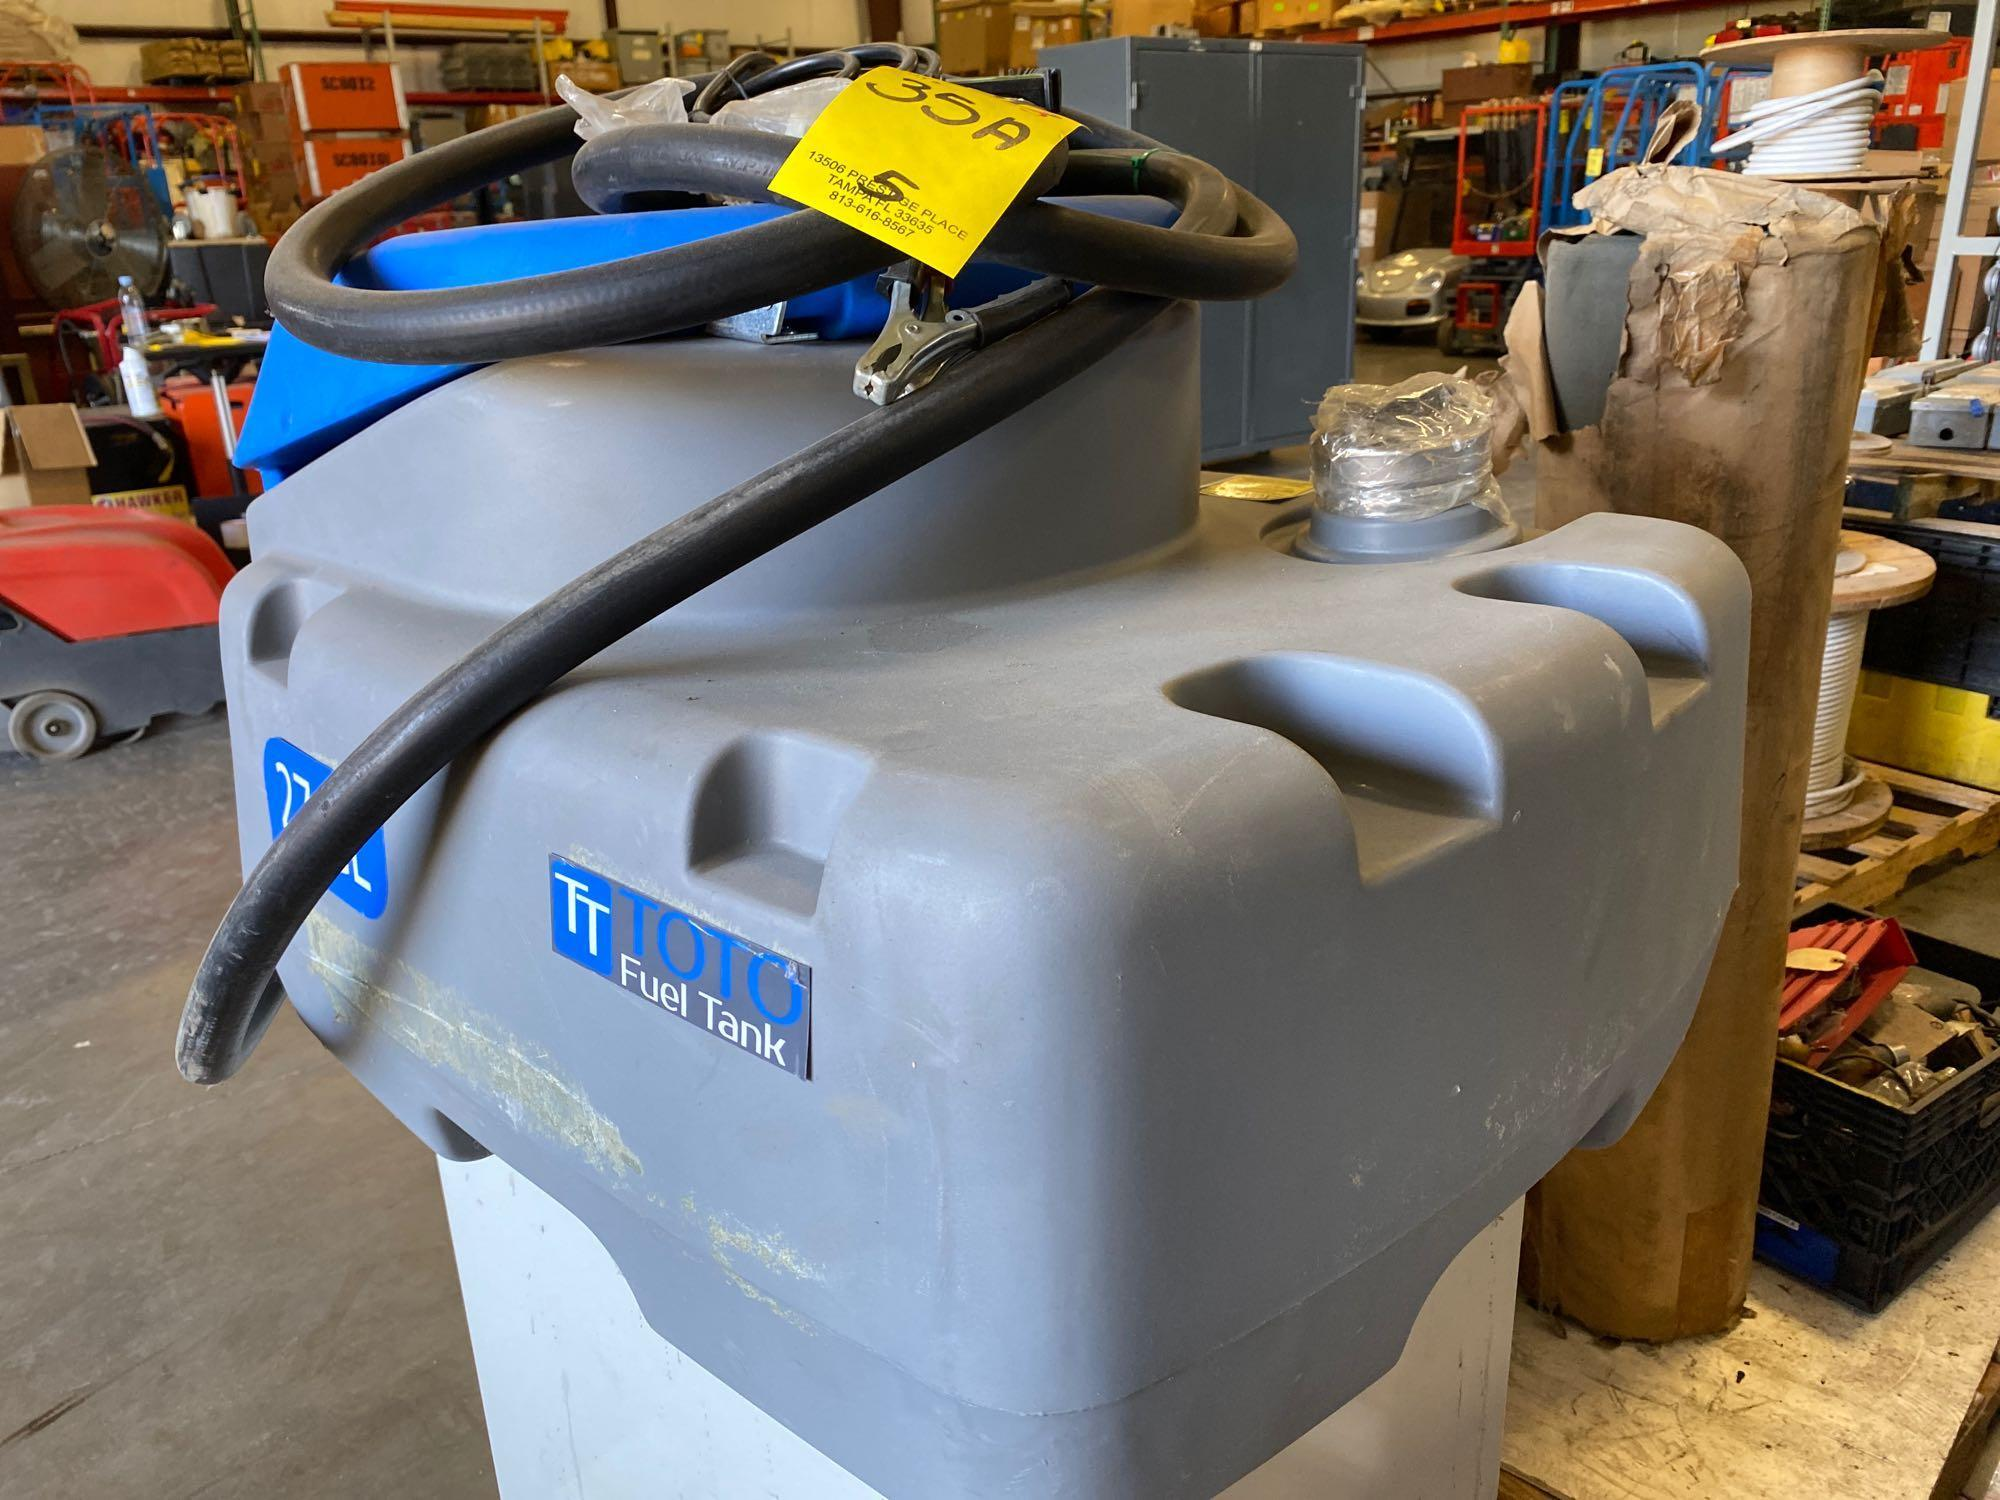 UNUSED TOTO 27 GALLON FUEL TANK WITH 12V PUMP - Image 5 of 6